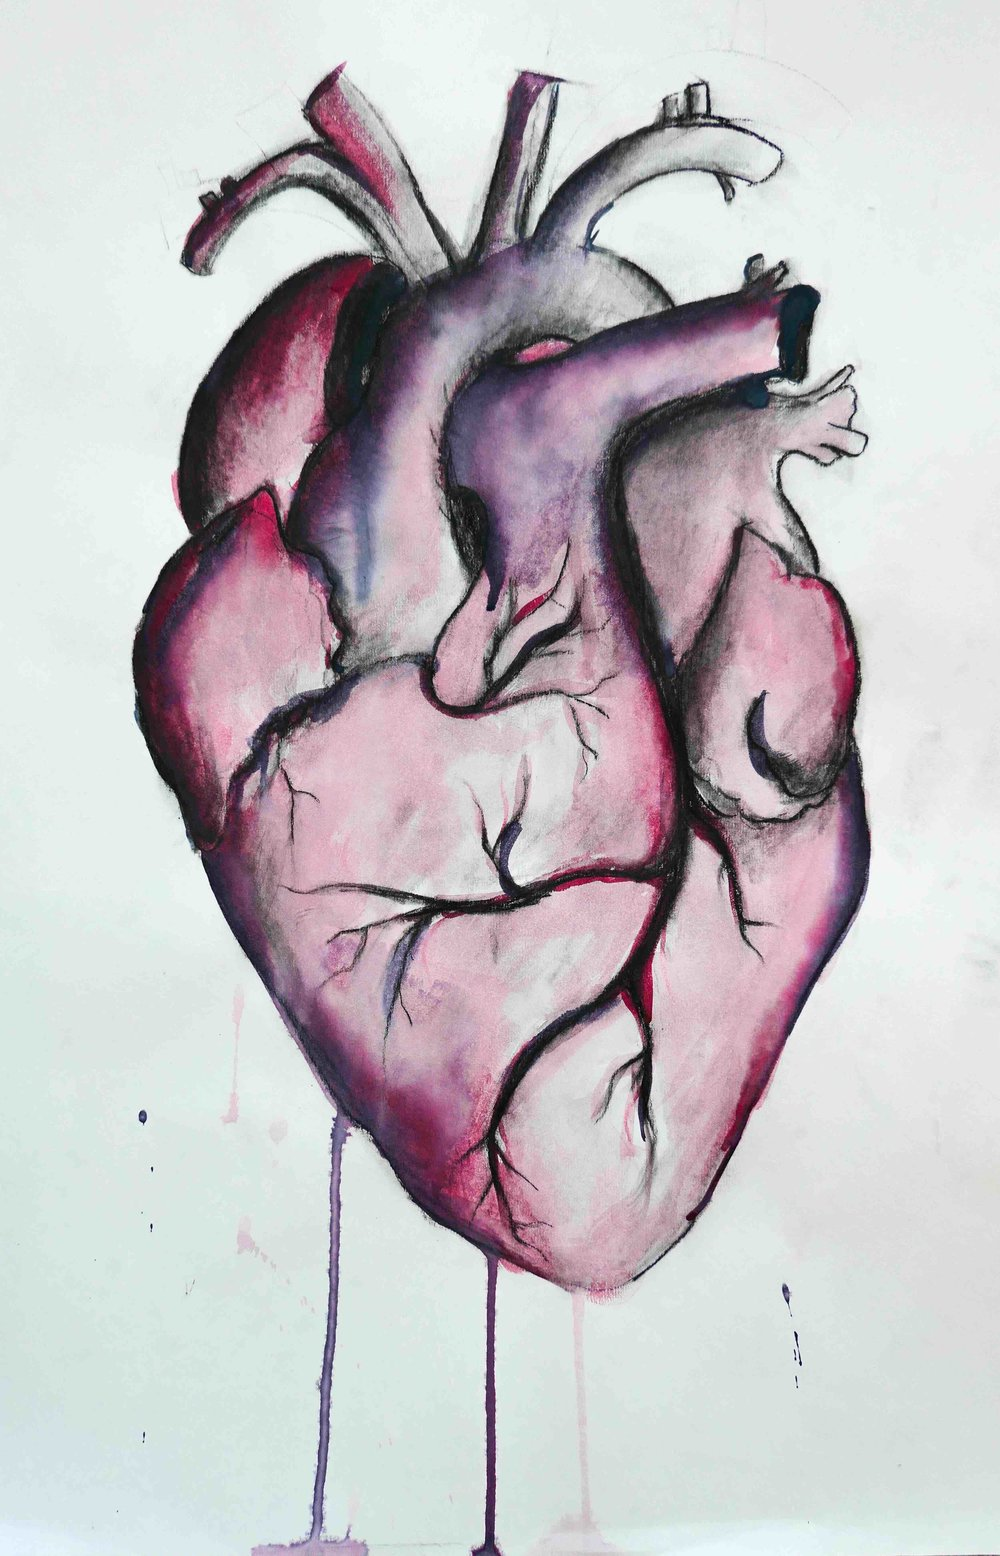 ANATOMICAL HEART by Heather Grace Hancock